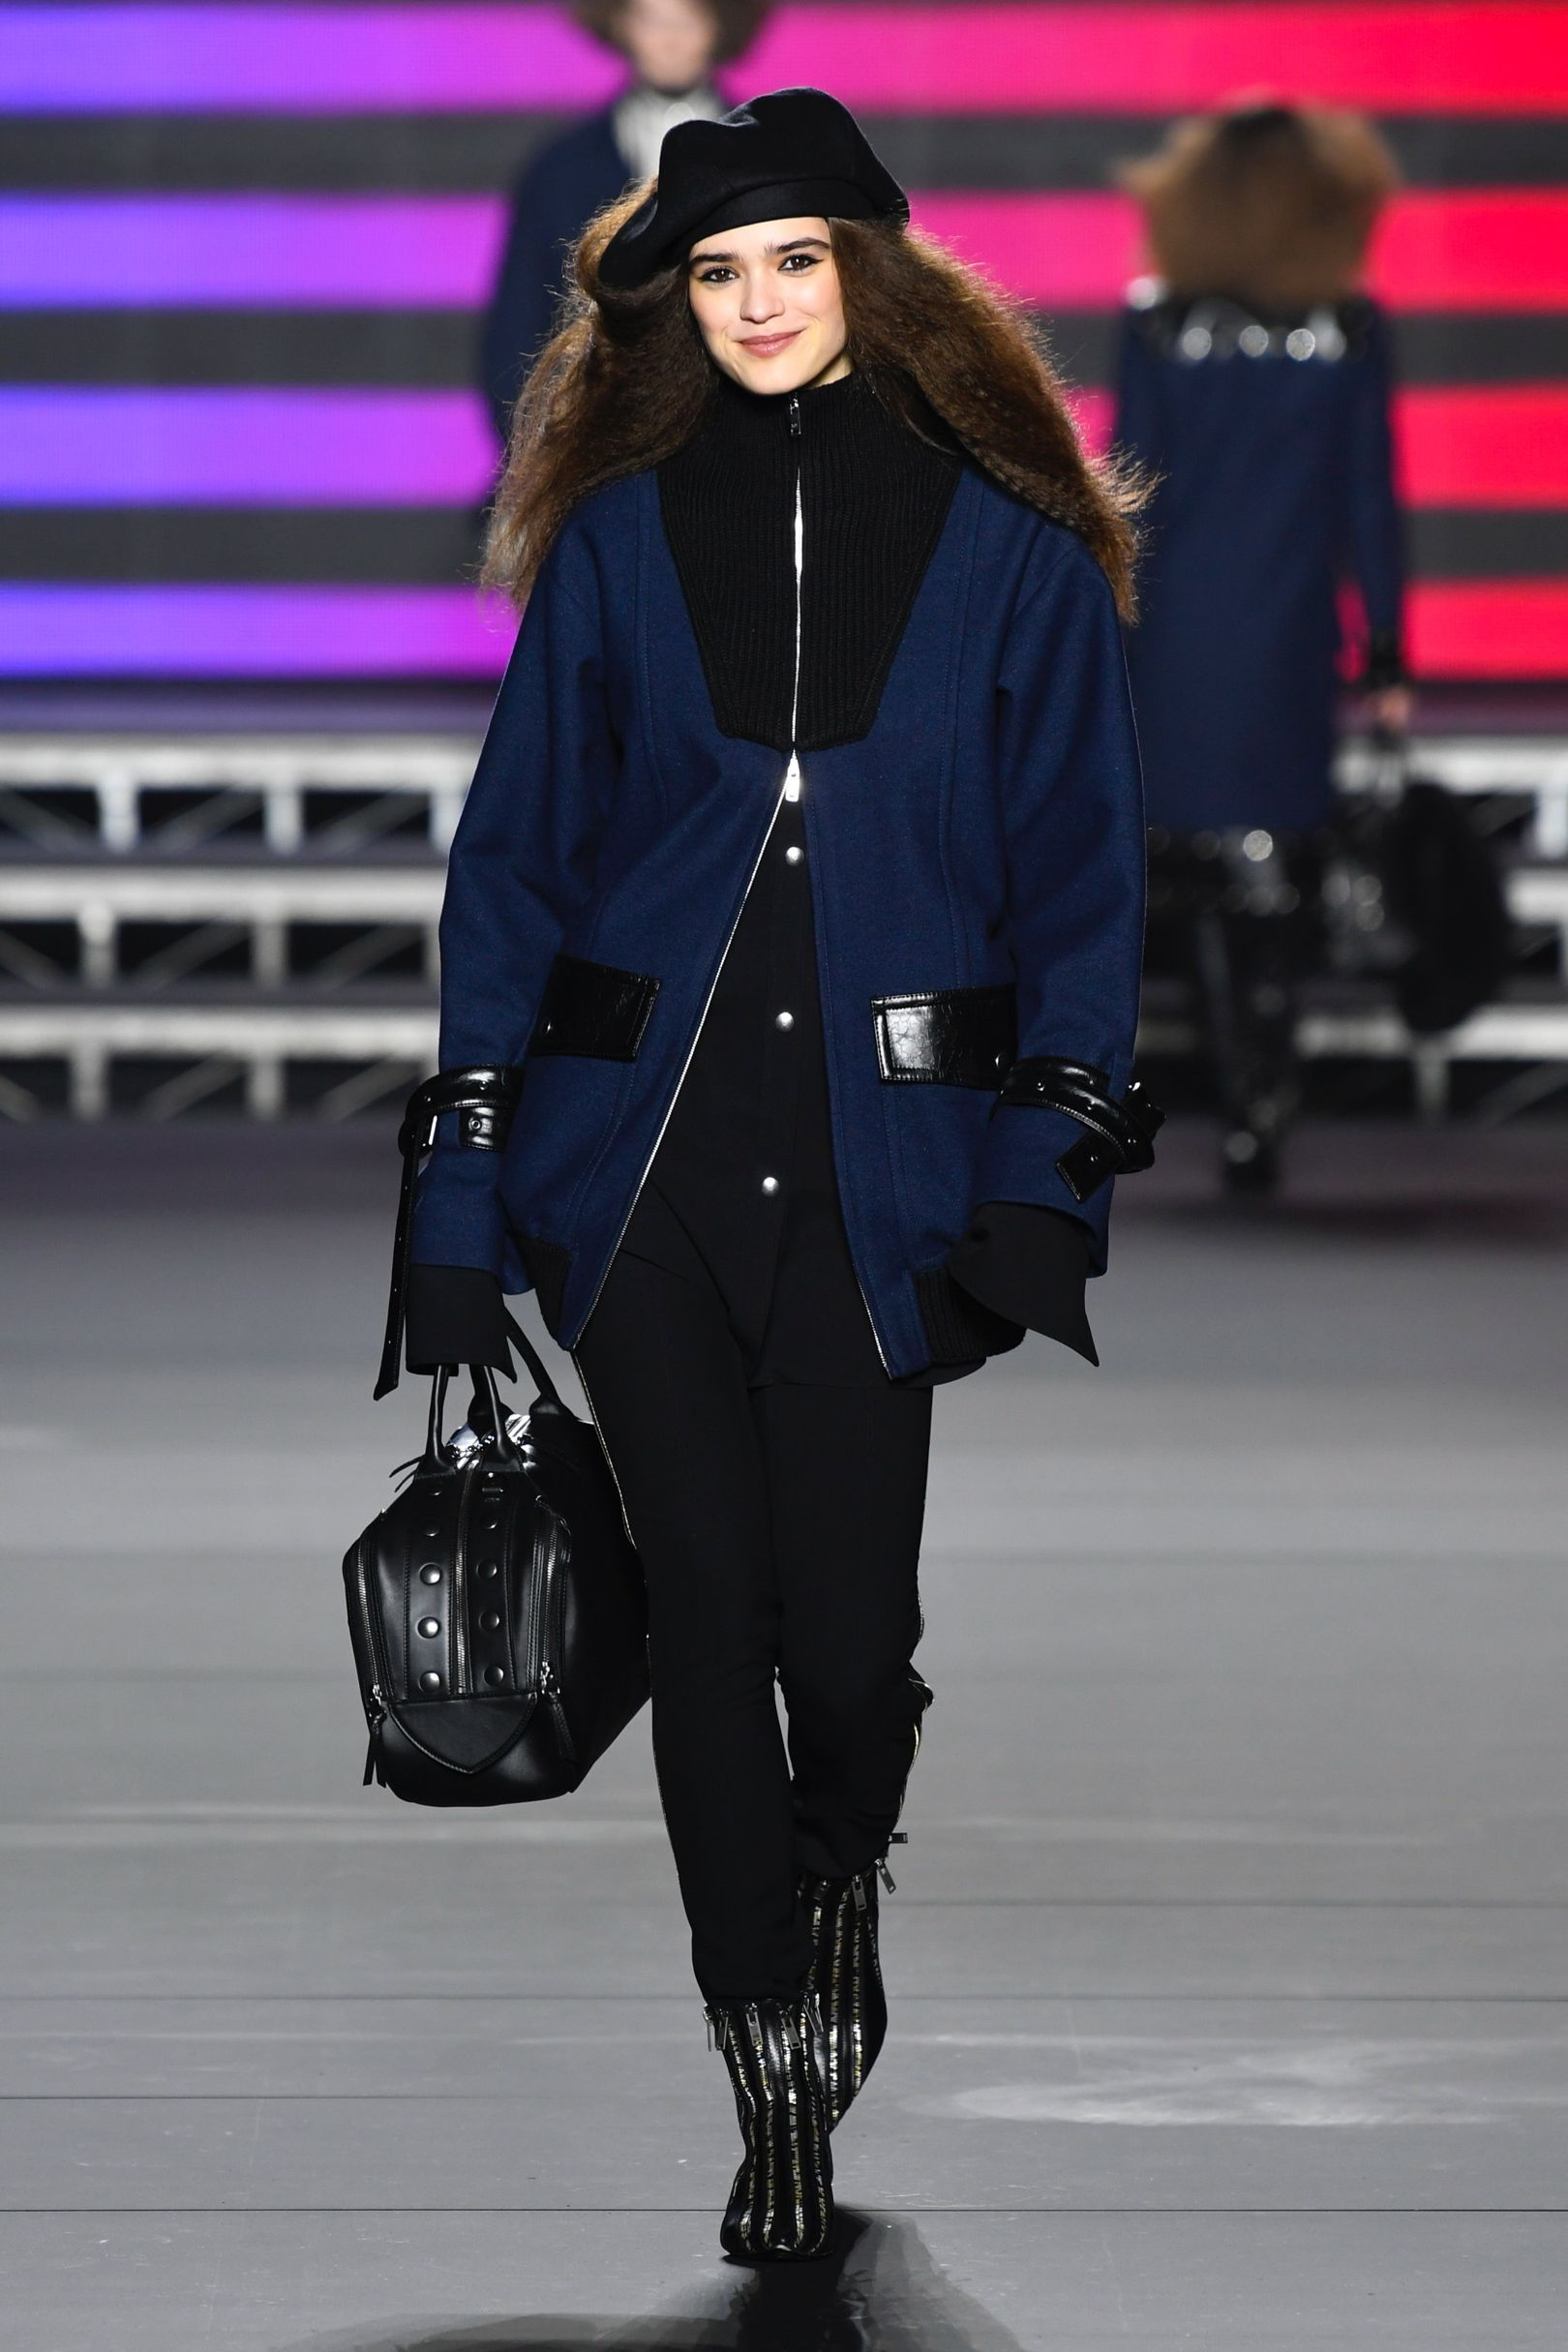 dc114901cc8 Sonia Rykiel, Vogue Paris, Fall Winter Outfits, Fall 2018, Catwalk  Collection,